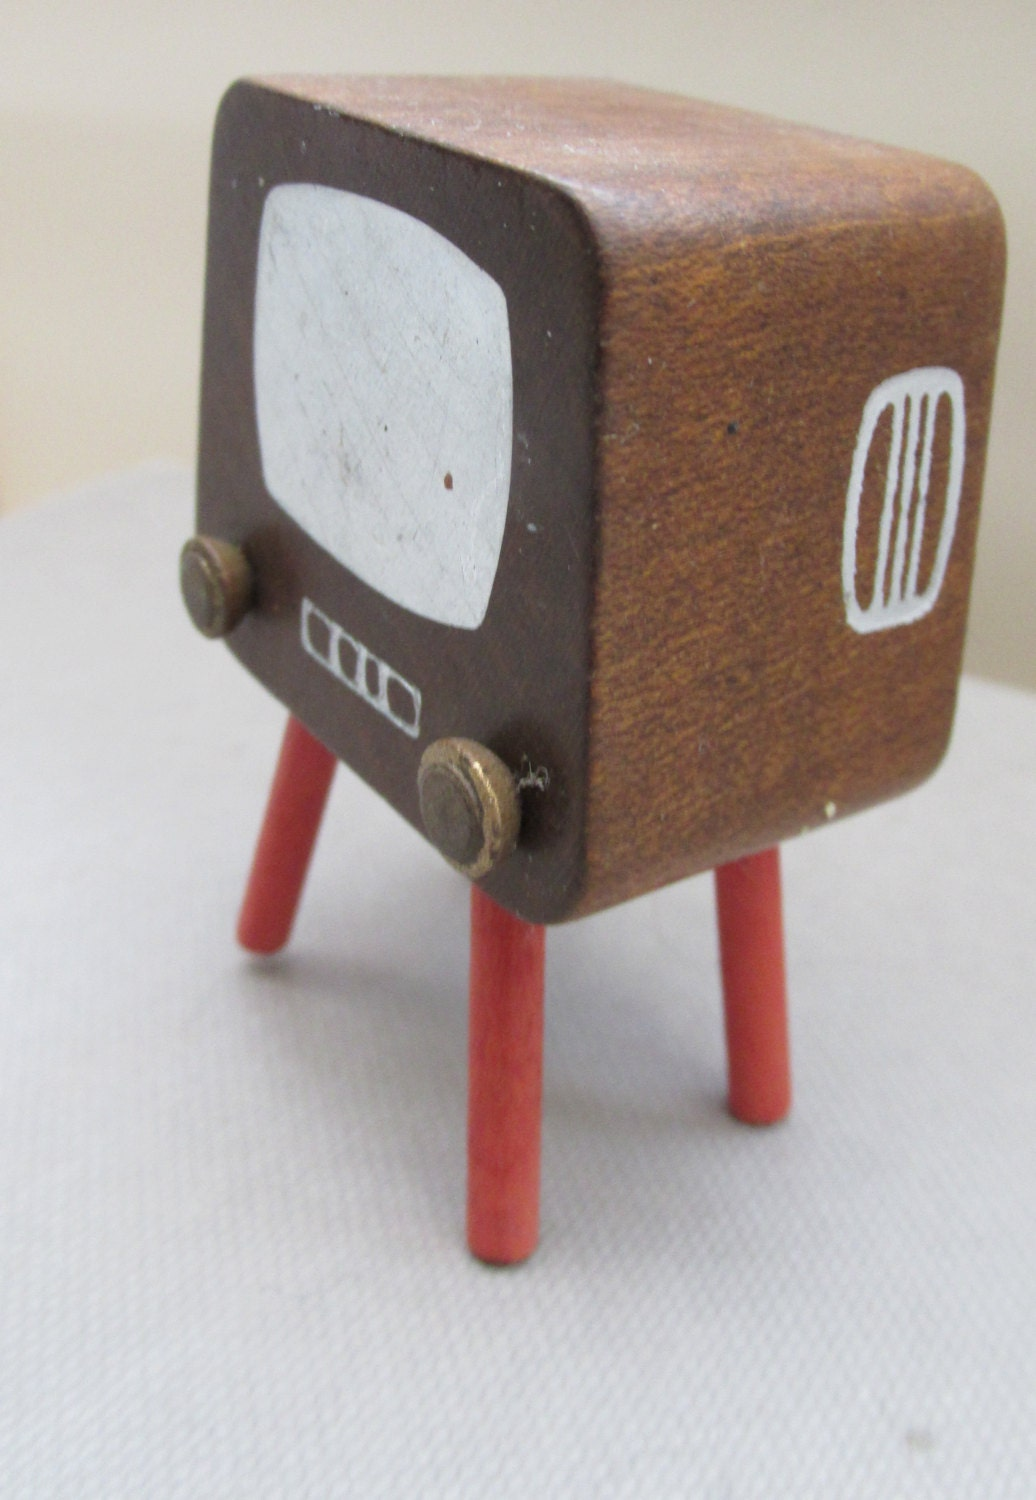 Vintage 1970s Czechoslovakian Tofa Wooden Dolls House Television Set